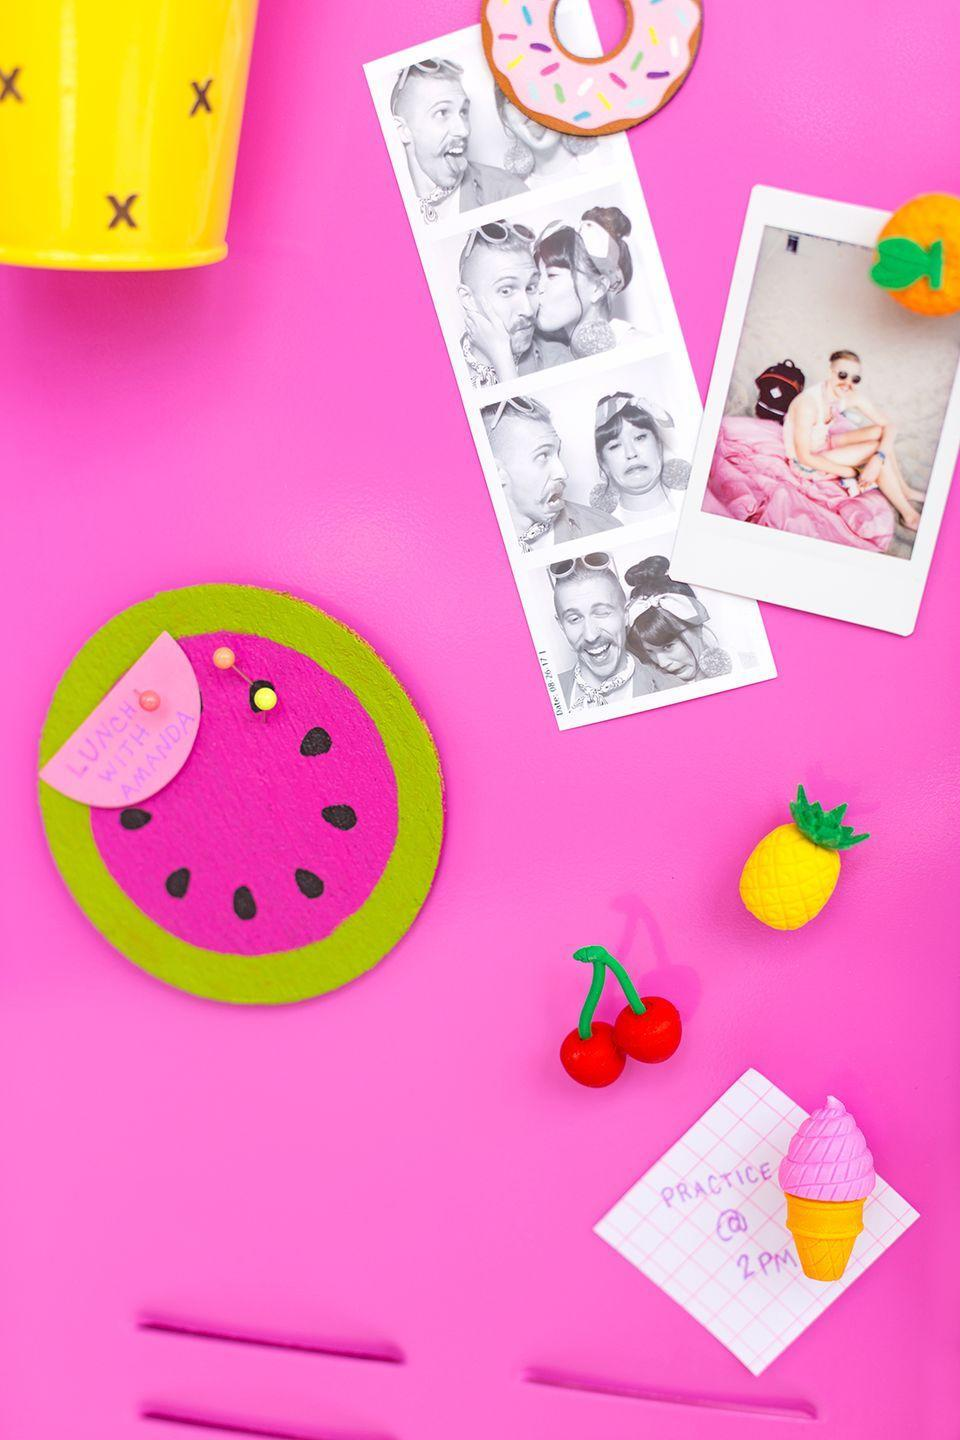 """<p>Why should we limit <a href=""""https://www.goodhousekeeping.com/food-recipes/a27198230/how-to-cut-a-watermelon/"""" rel=""""nofollow noopener"""" target=""""_blank"""" data-ylk=""""slk:watermelon"""" class=""""link rapid-noclick-resp"""">watermelon</a> to only one season? Exactly. Now, you'll actually like sitting at your desk.</p><p><em><a href=""""http://www.awwsam.com/2017/08/diy-locker-decoration-ideas.html"""" rel=""""nofollow noopener"""" target=""""_blank"""" data-ylk=""""slk:Get the tutorial at Aww Sam »"""" class=""""link rapid-noclick-resp"""">Get the tutorial at Aww Sam »</a></em> </p>"""